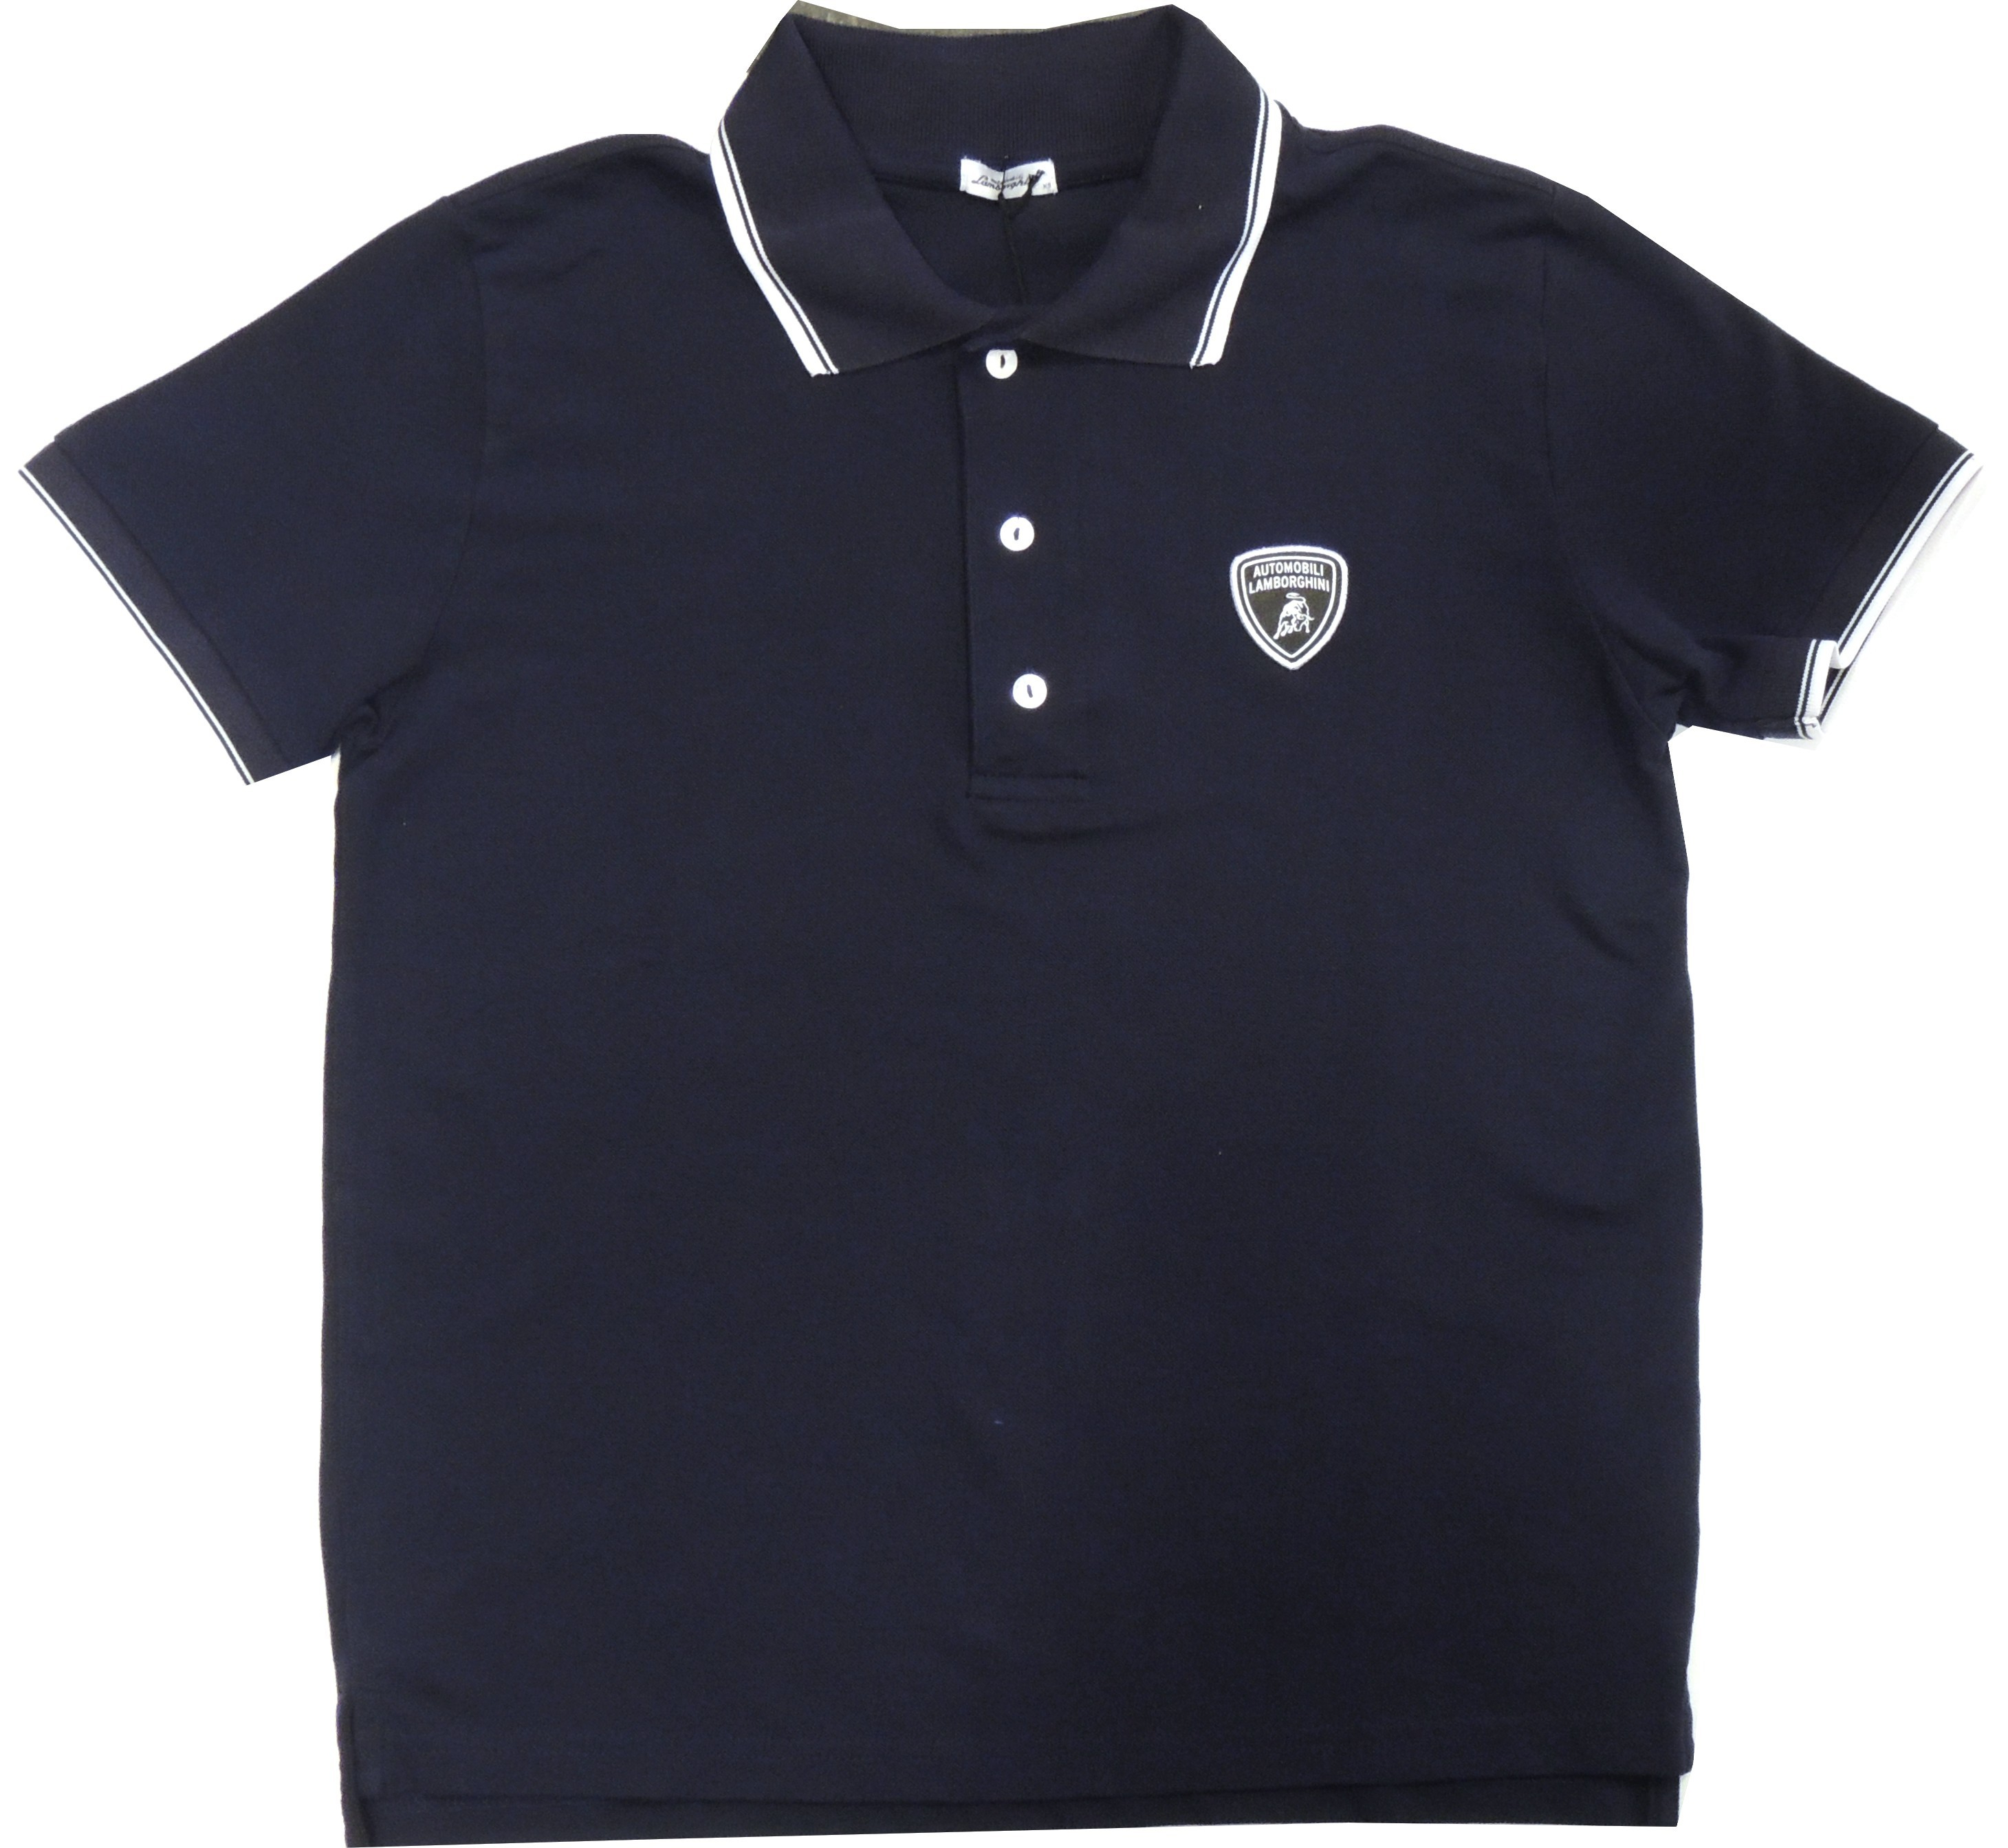 Lamborghini Men Basic Shield SS Soft Piquet Tipping Blue Navy